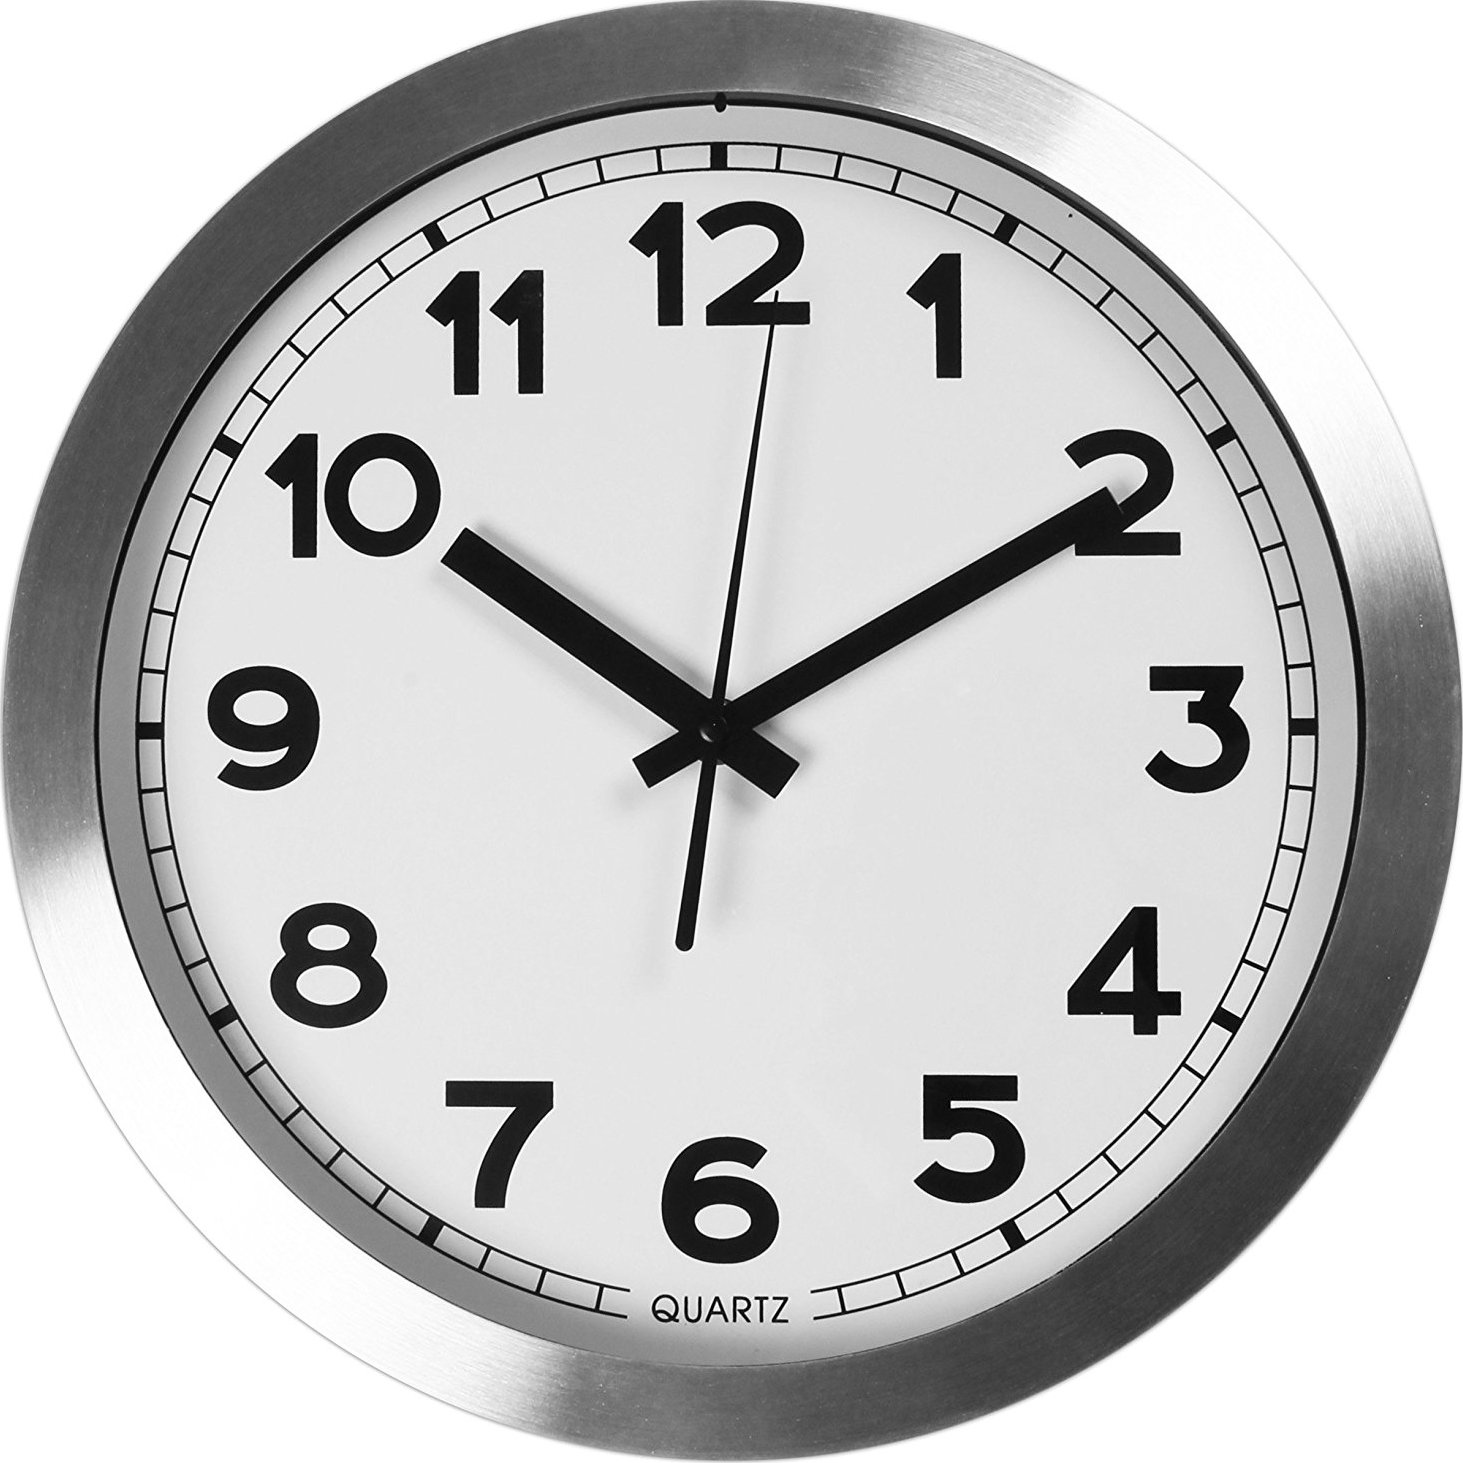 amazon com large decorative wall clock universal non ticking amazon com large decorative wall clock universal non ticking silent 12 inches wall clock by utopia home aluminum kitchen dining